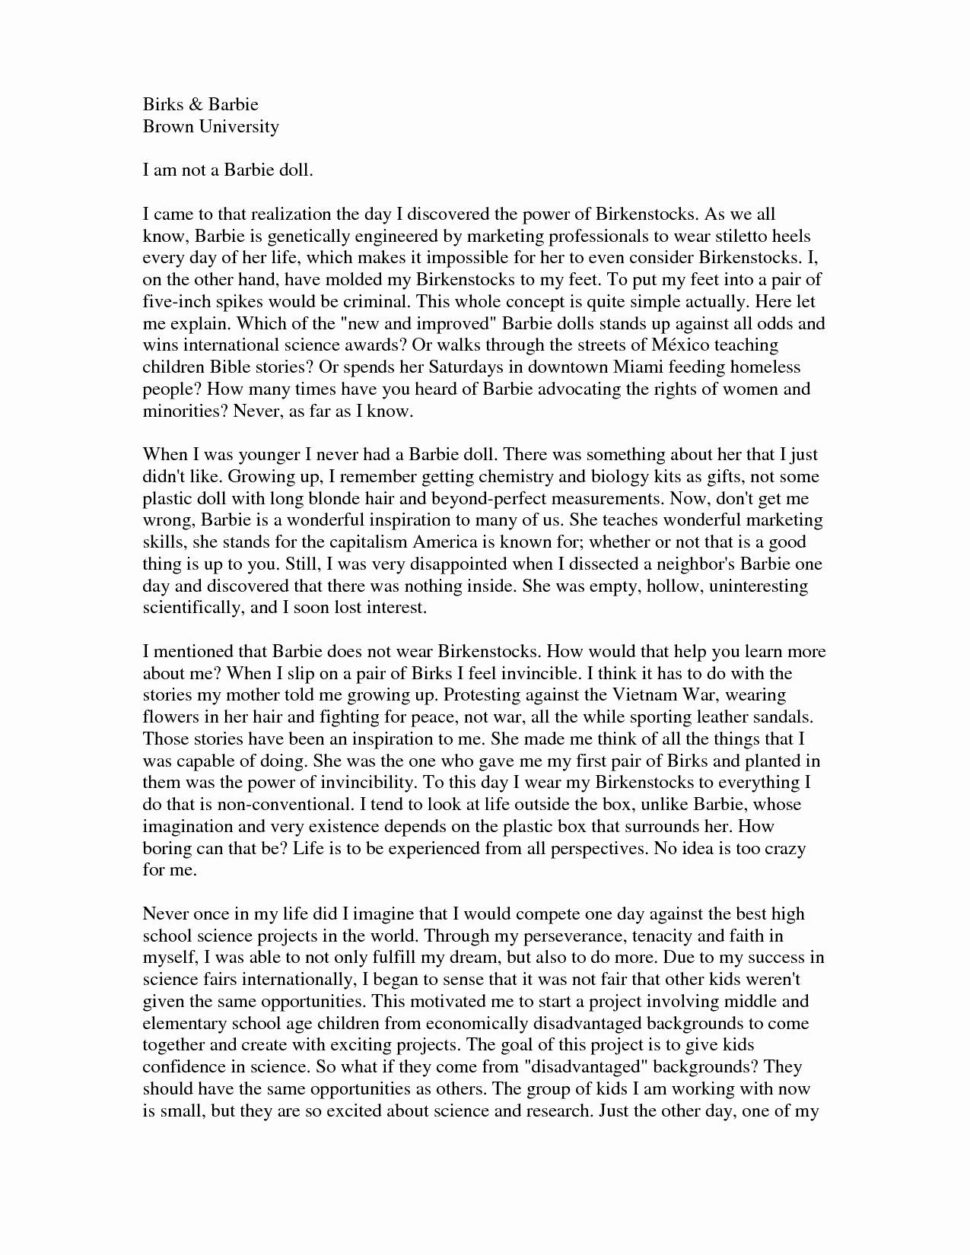 Large Size of How To Format An Essay For College Application